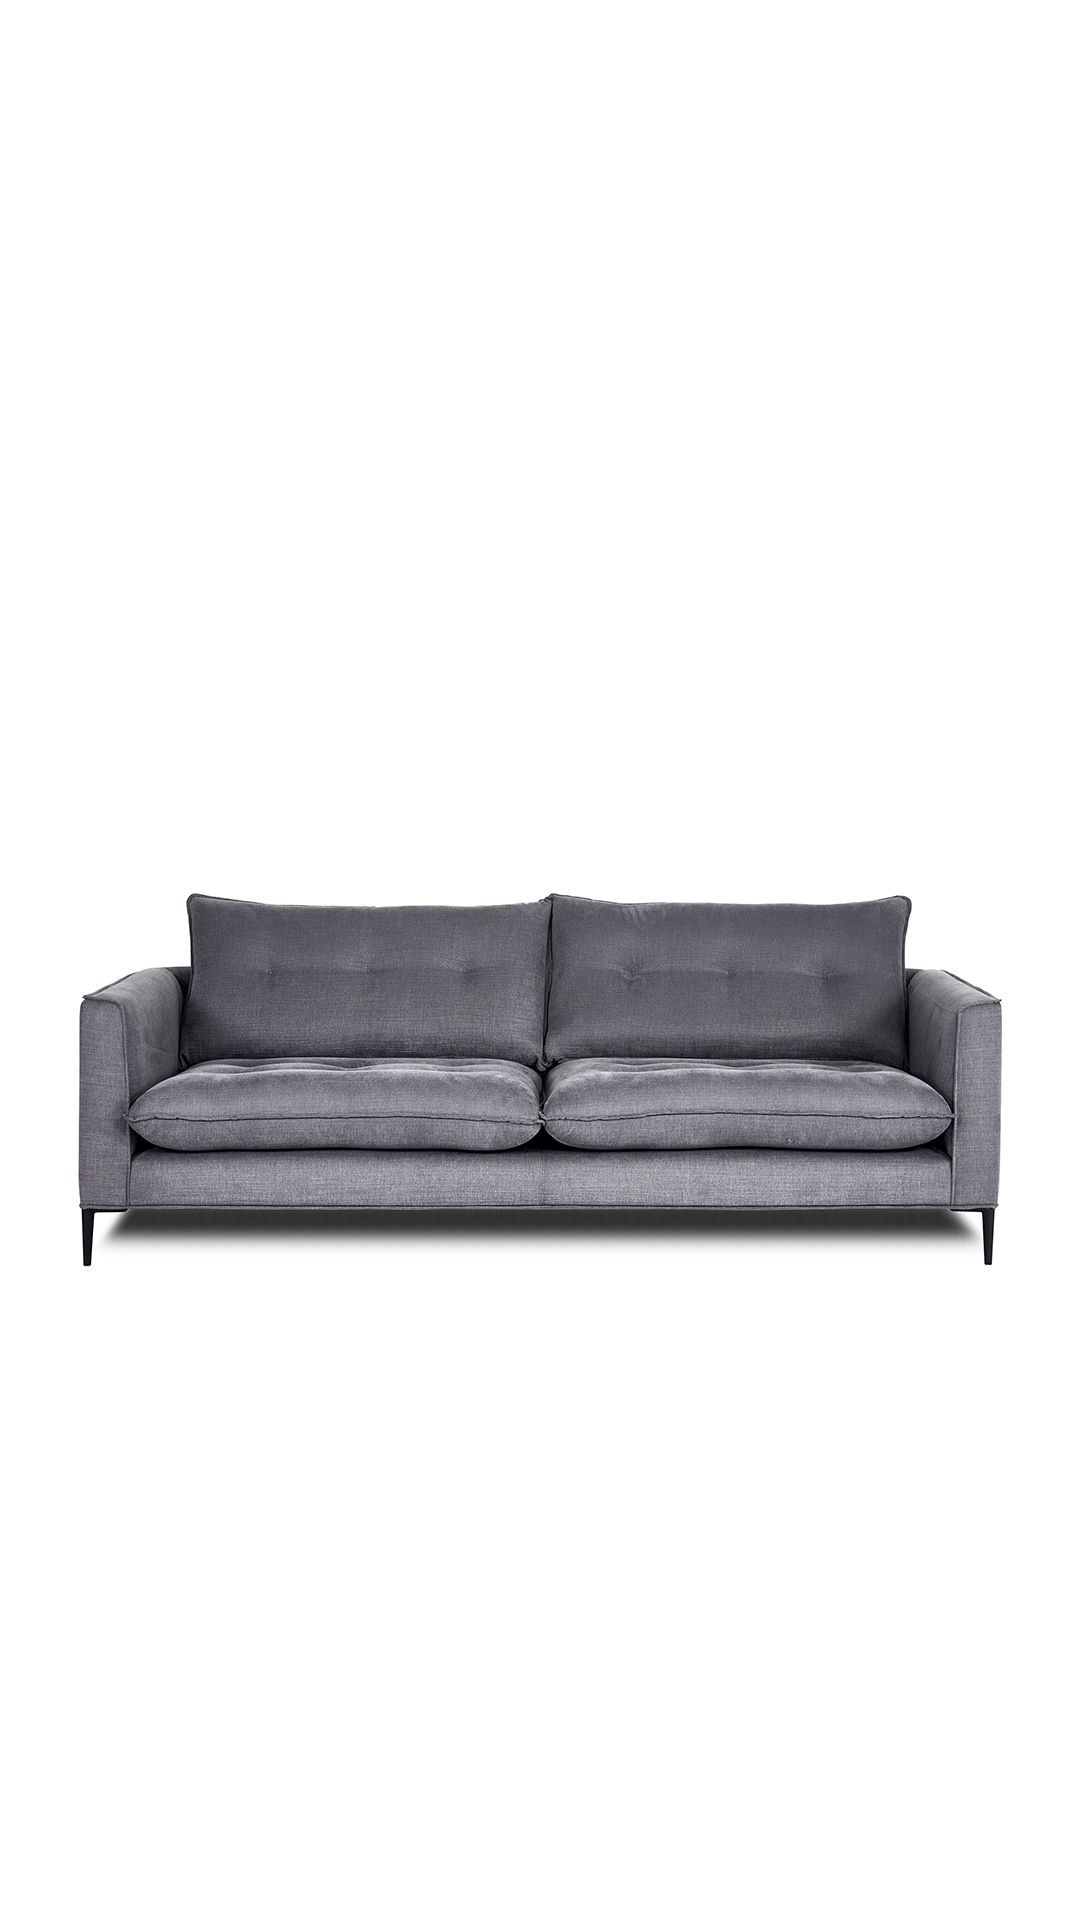 The Xavier Sofa Is One Of Our Newest